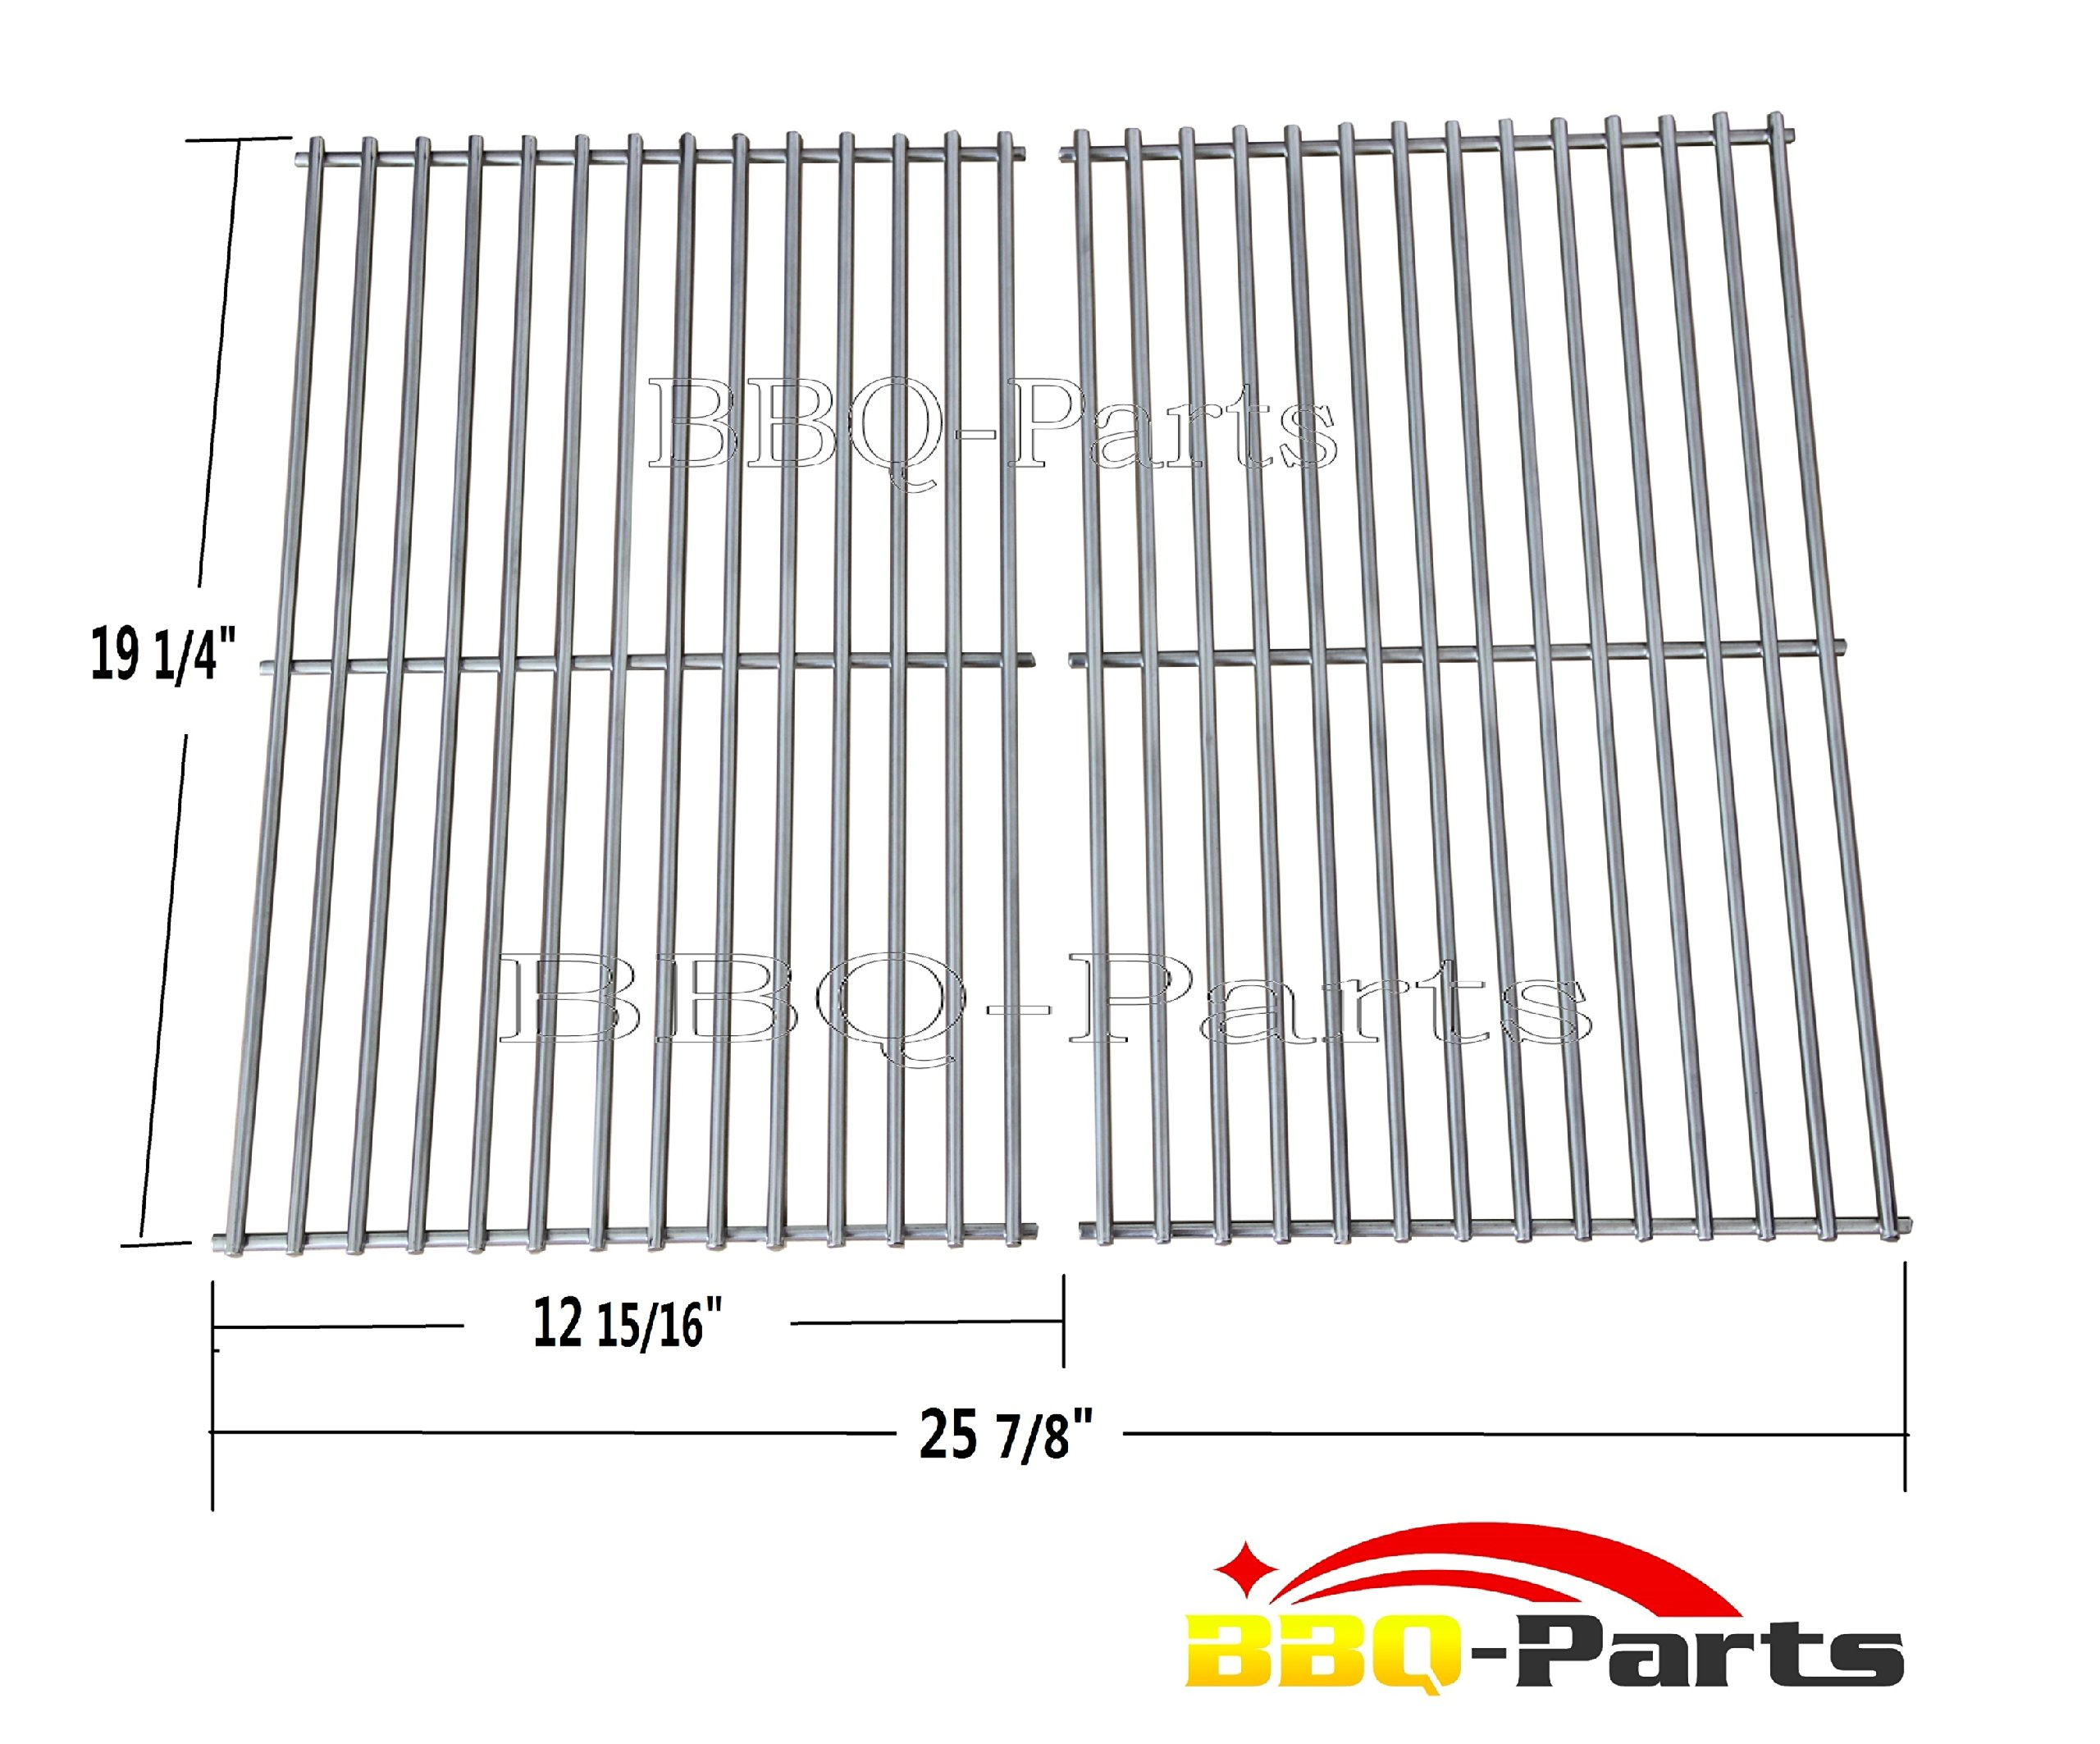 Scf3s2 Bbq Stainless Steel Wire Cooking Grid Replacement For Jenn Air Nexgrill